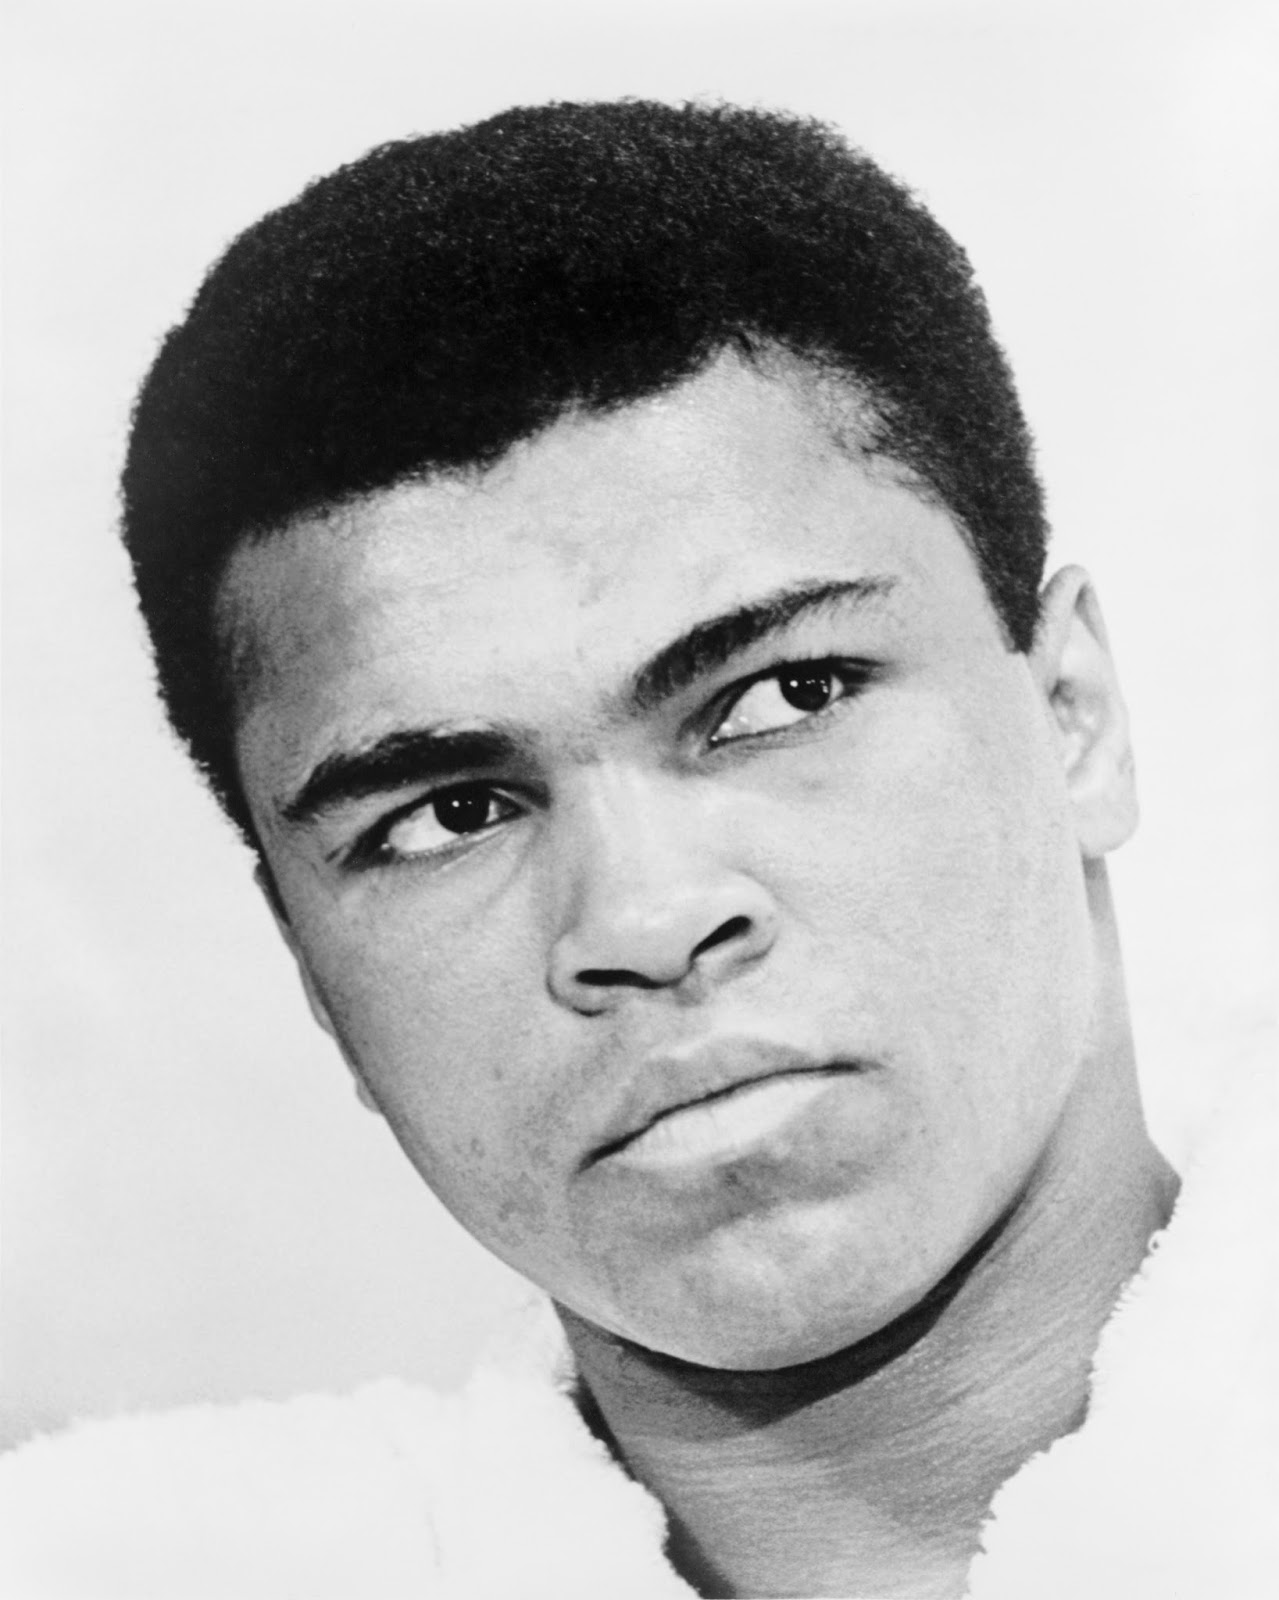 a story of the life of a hero muhammad ali or cassius clay Myth now dominates our misunderstanding of muhammad ali, who was once   best example of a widely believed ali story that misses the mark and obscures   history records ali's famous strategy, the 'rope-a-dope' defense, in which   rounds after henry cooper dropped cassius clay in their first bout.